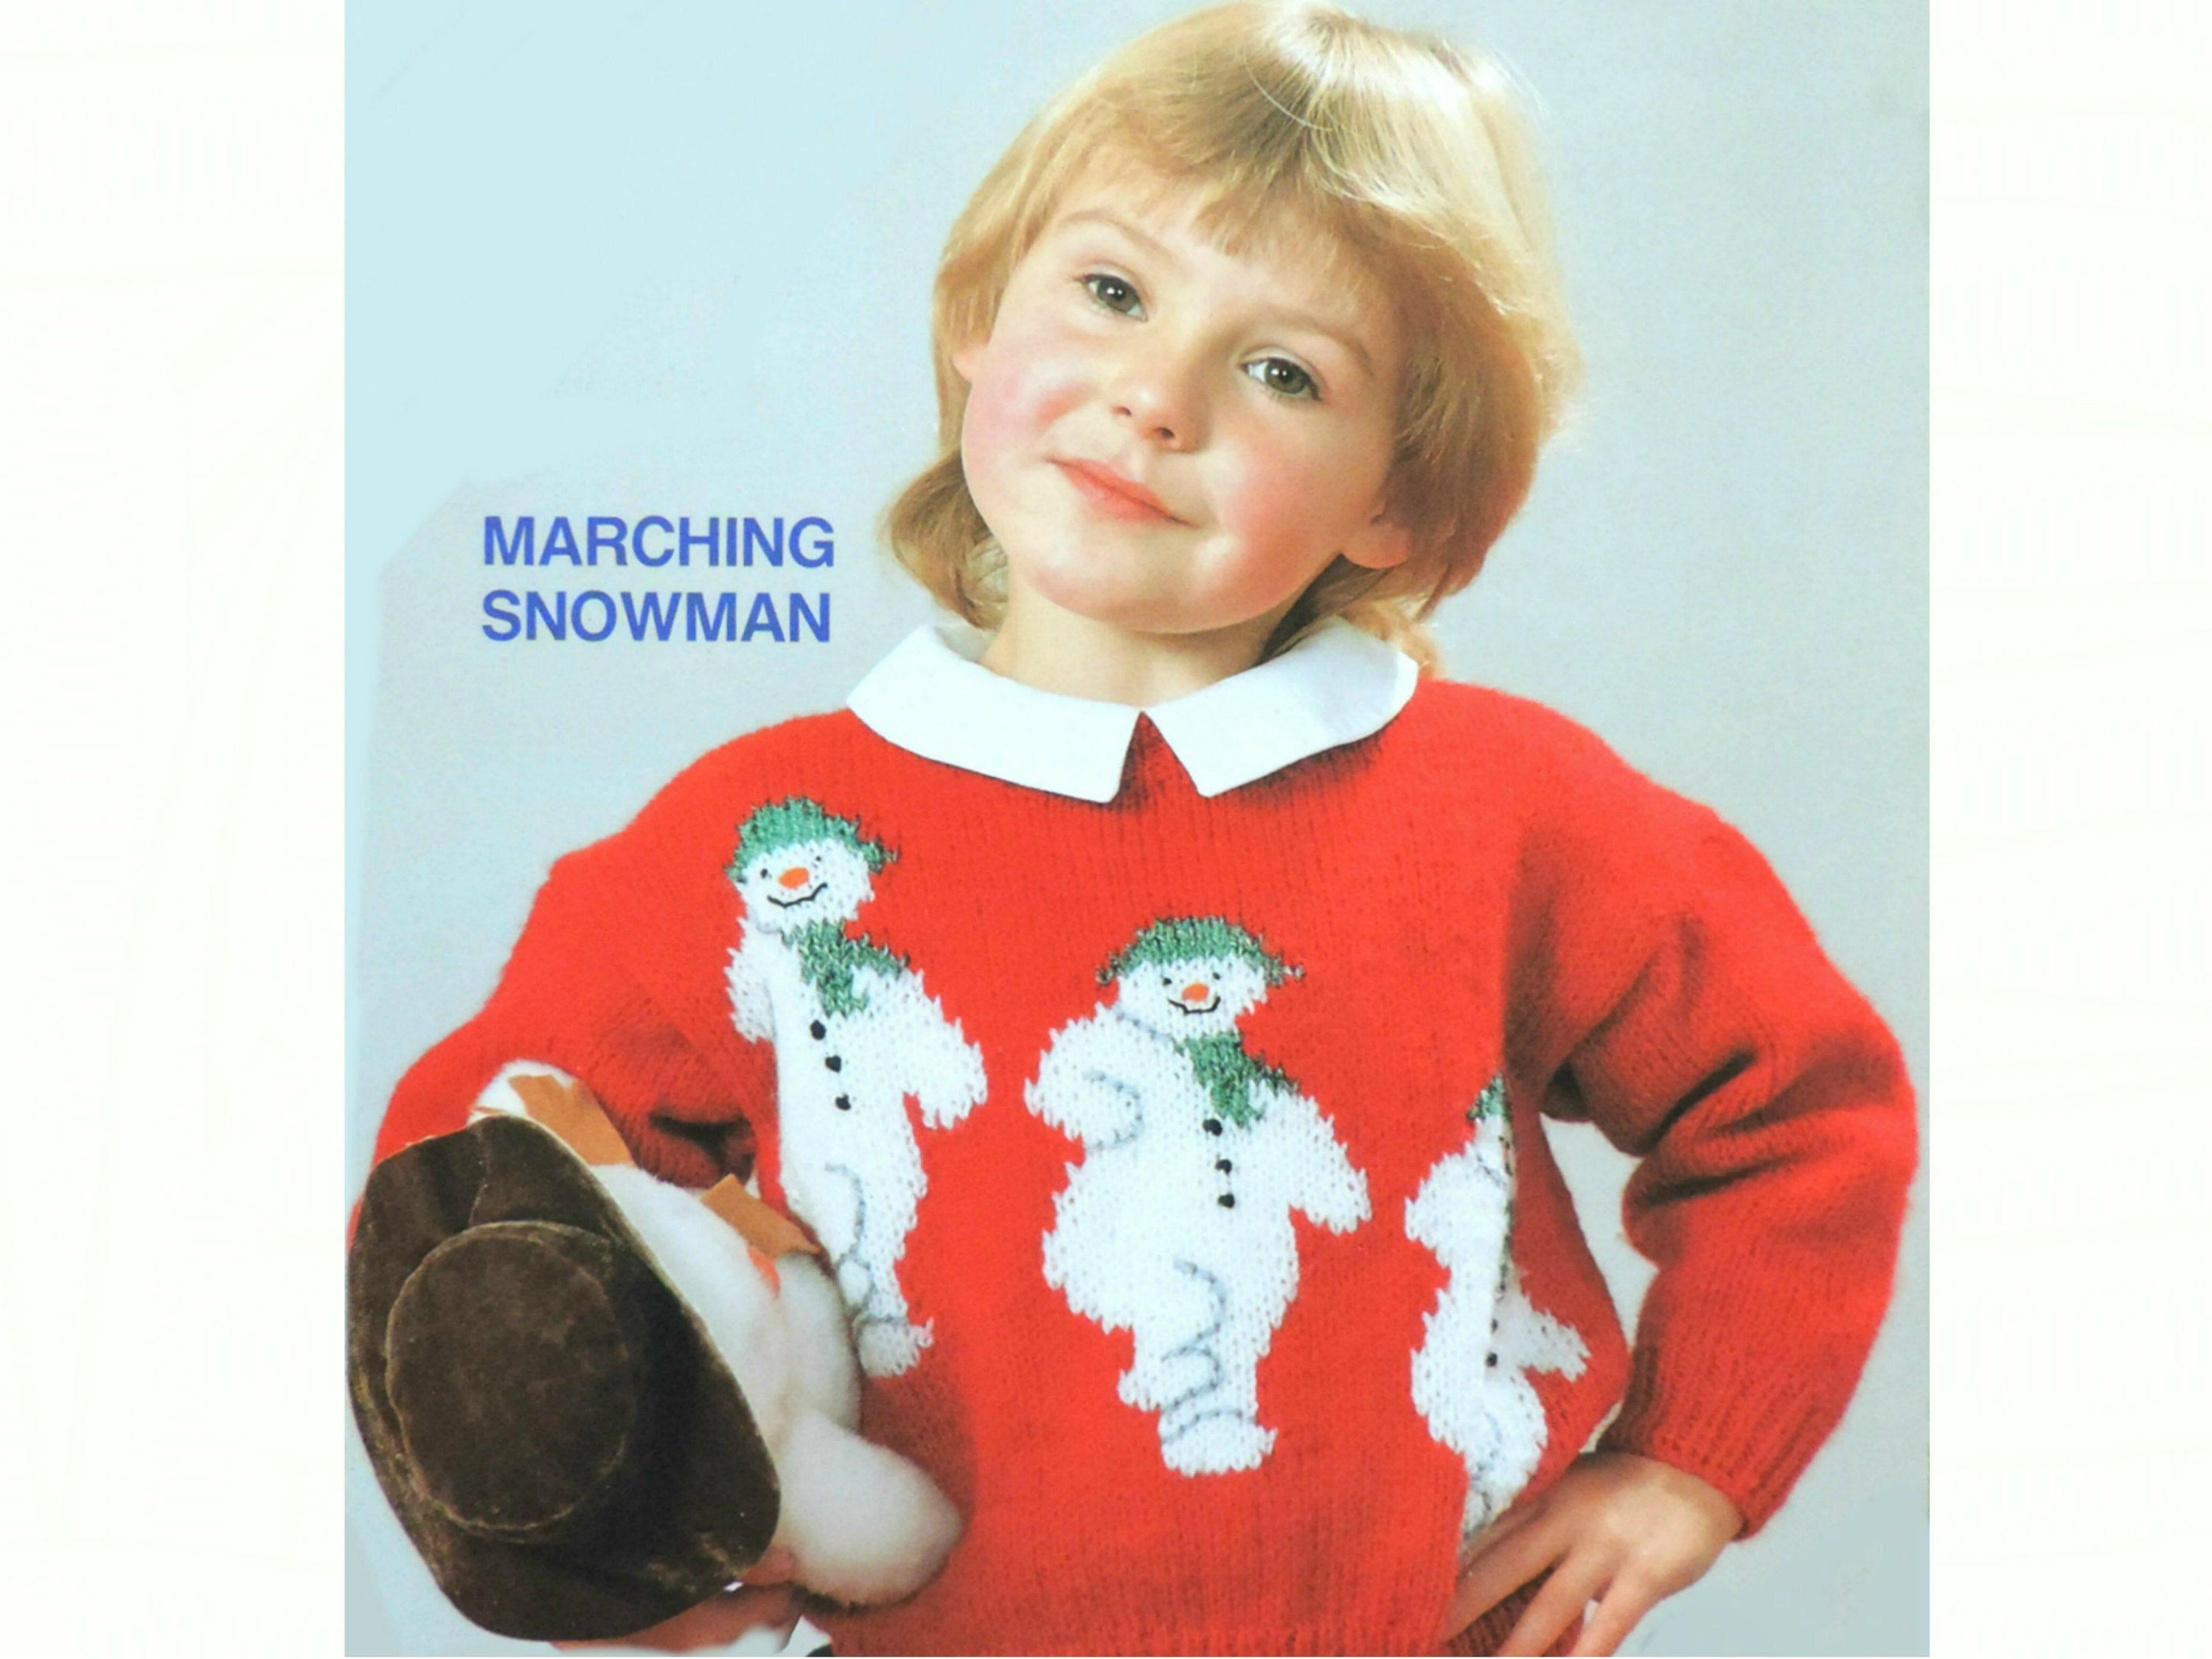 Toddlers & Childrens Marching Snowman Sweater, Knitting ...